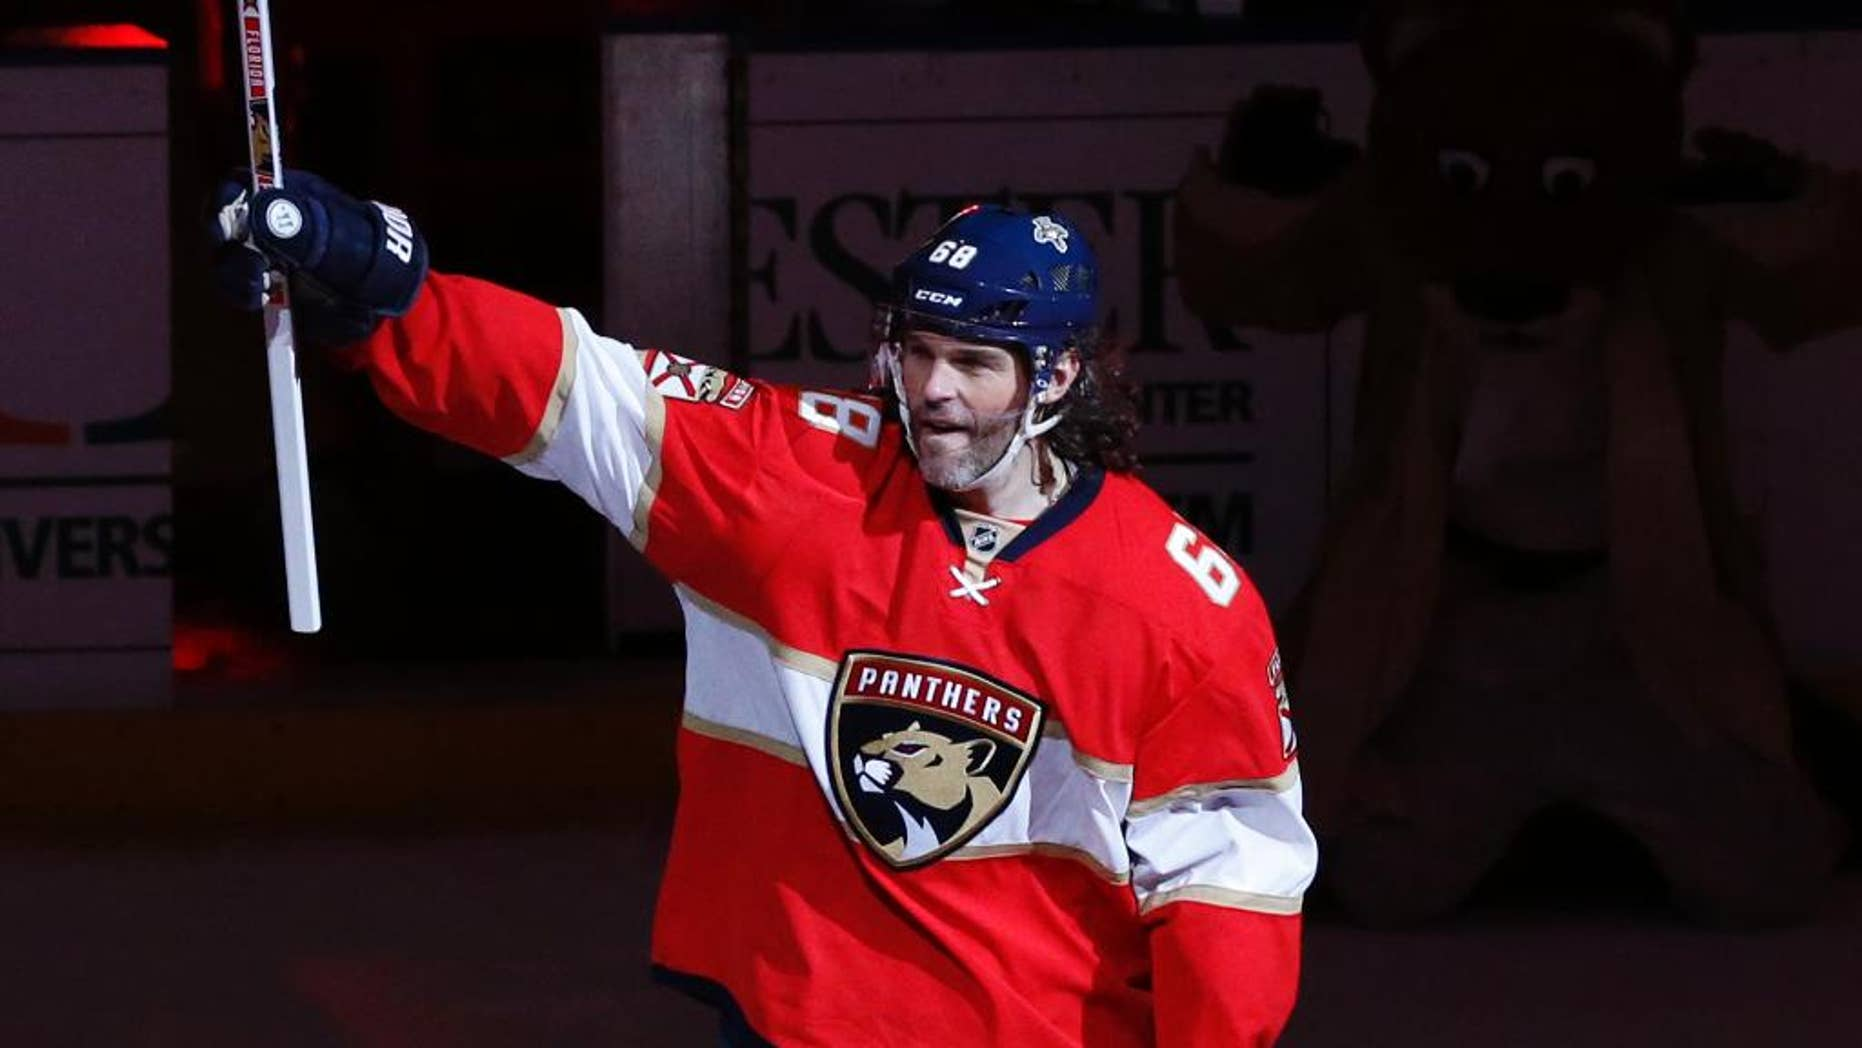 Florida Panthers right wing Jaromir Jagr (68) acknowledges the fans after the NFL hockey game against the Buffalo Sabres, Tuesday, Dec. 20, 2016, in Sunrise, Fla. Jagr tied Mark Messier for 2nd pace overall in NHL scoring with 1,887 points. The Panthers defeated the Sabres 4-3 in a shoot out. (AP Photo/Joel Auerbach)